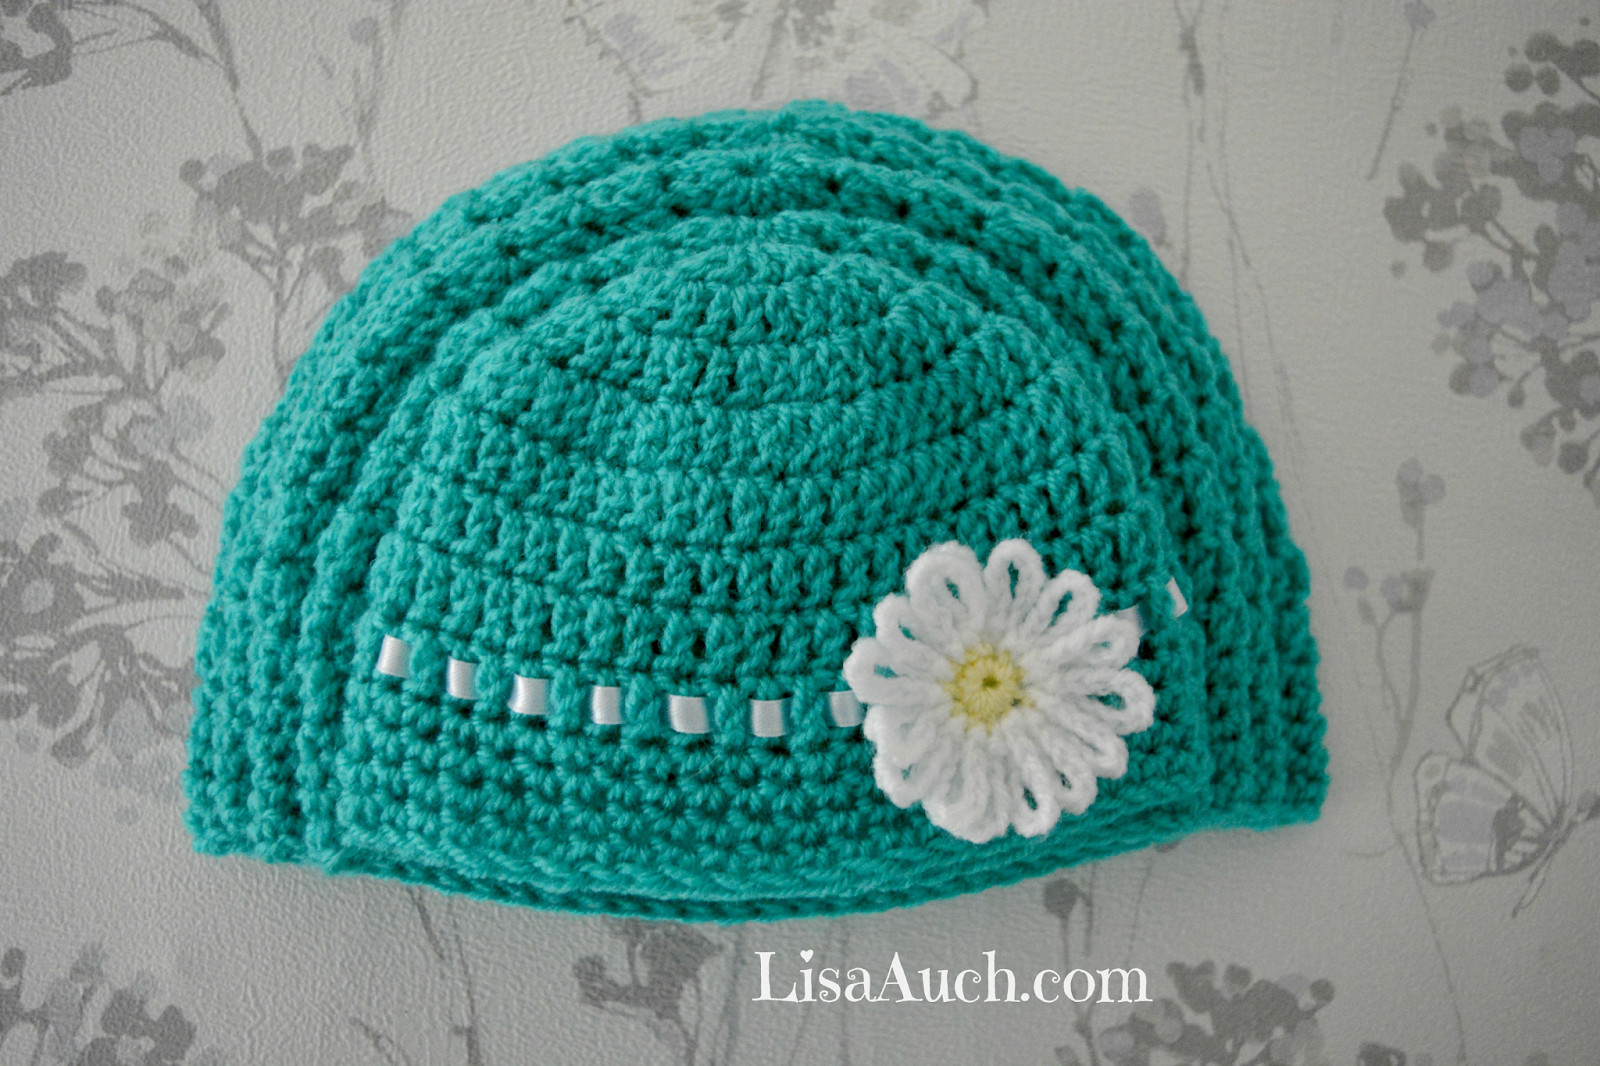 Inspirational Free Crochet Patterns and Designs by Lisaauch Free Easy Crochet Flowers for Hats Free Patterns Of Luxury 25 Best Ideas About Crochet Hats On Pinterest Crochet Flowers for Hats Free Patterns